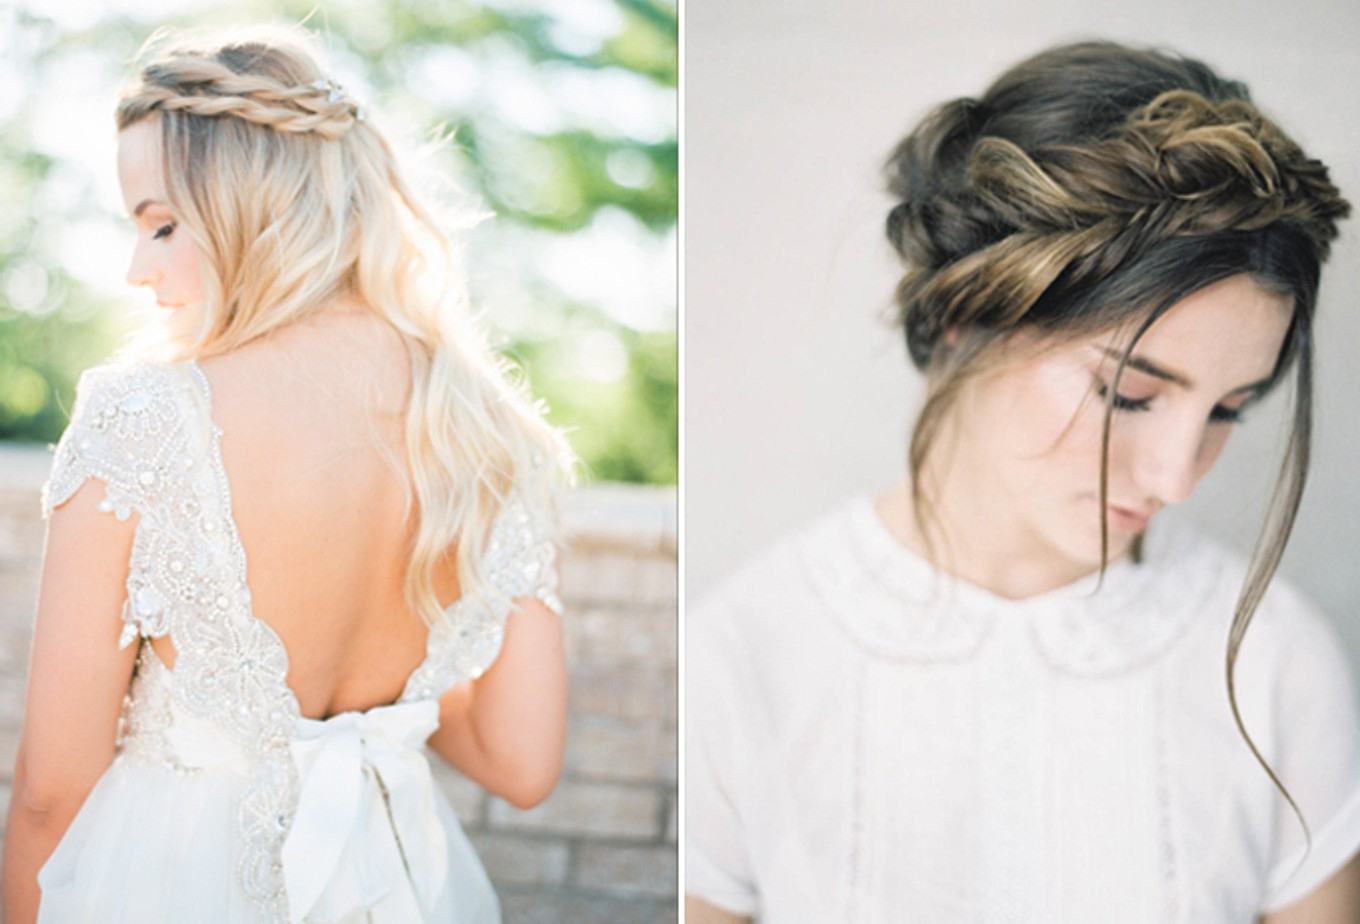 Well Liked Sleek Low Bun Rosy Outlook Wedding Updos Throughout How To Choose The Right Hairstyle For Your Wedding Day – Bridestory Blog (View 9 of 20)